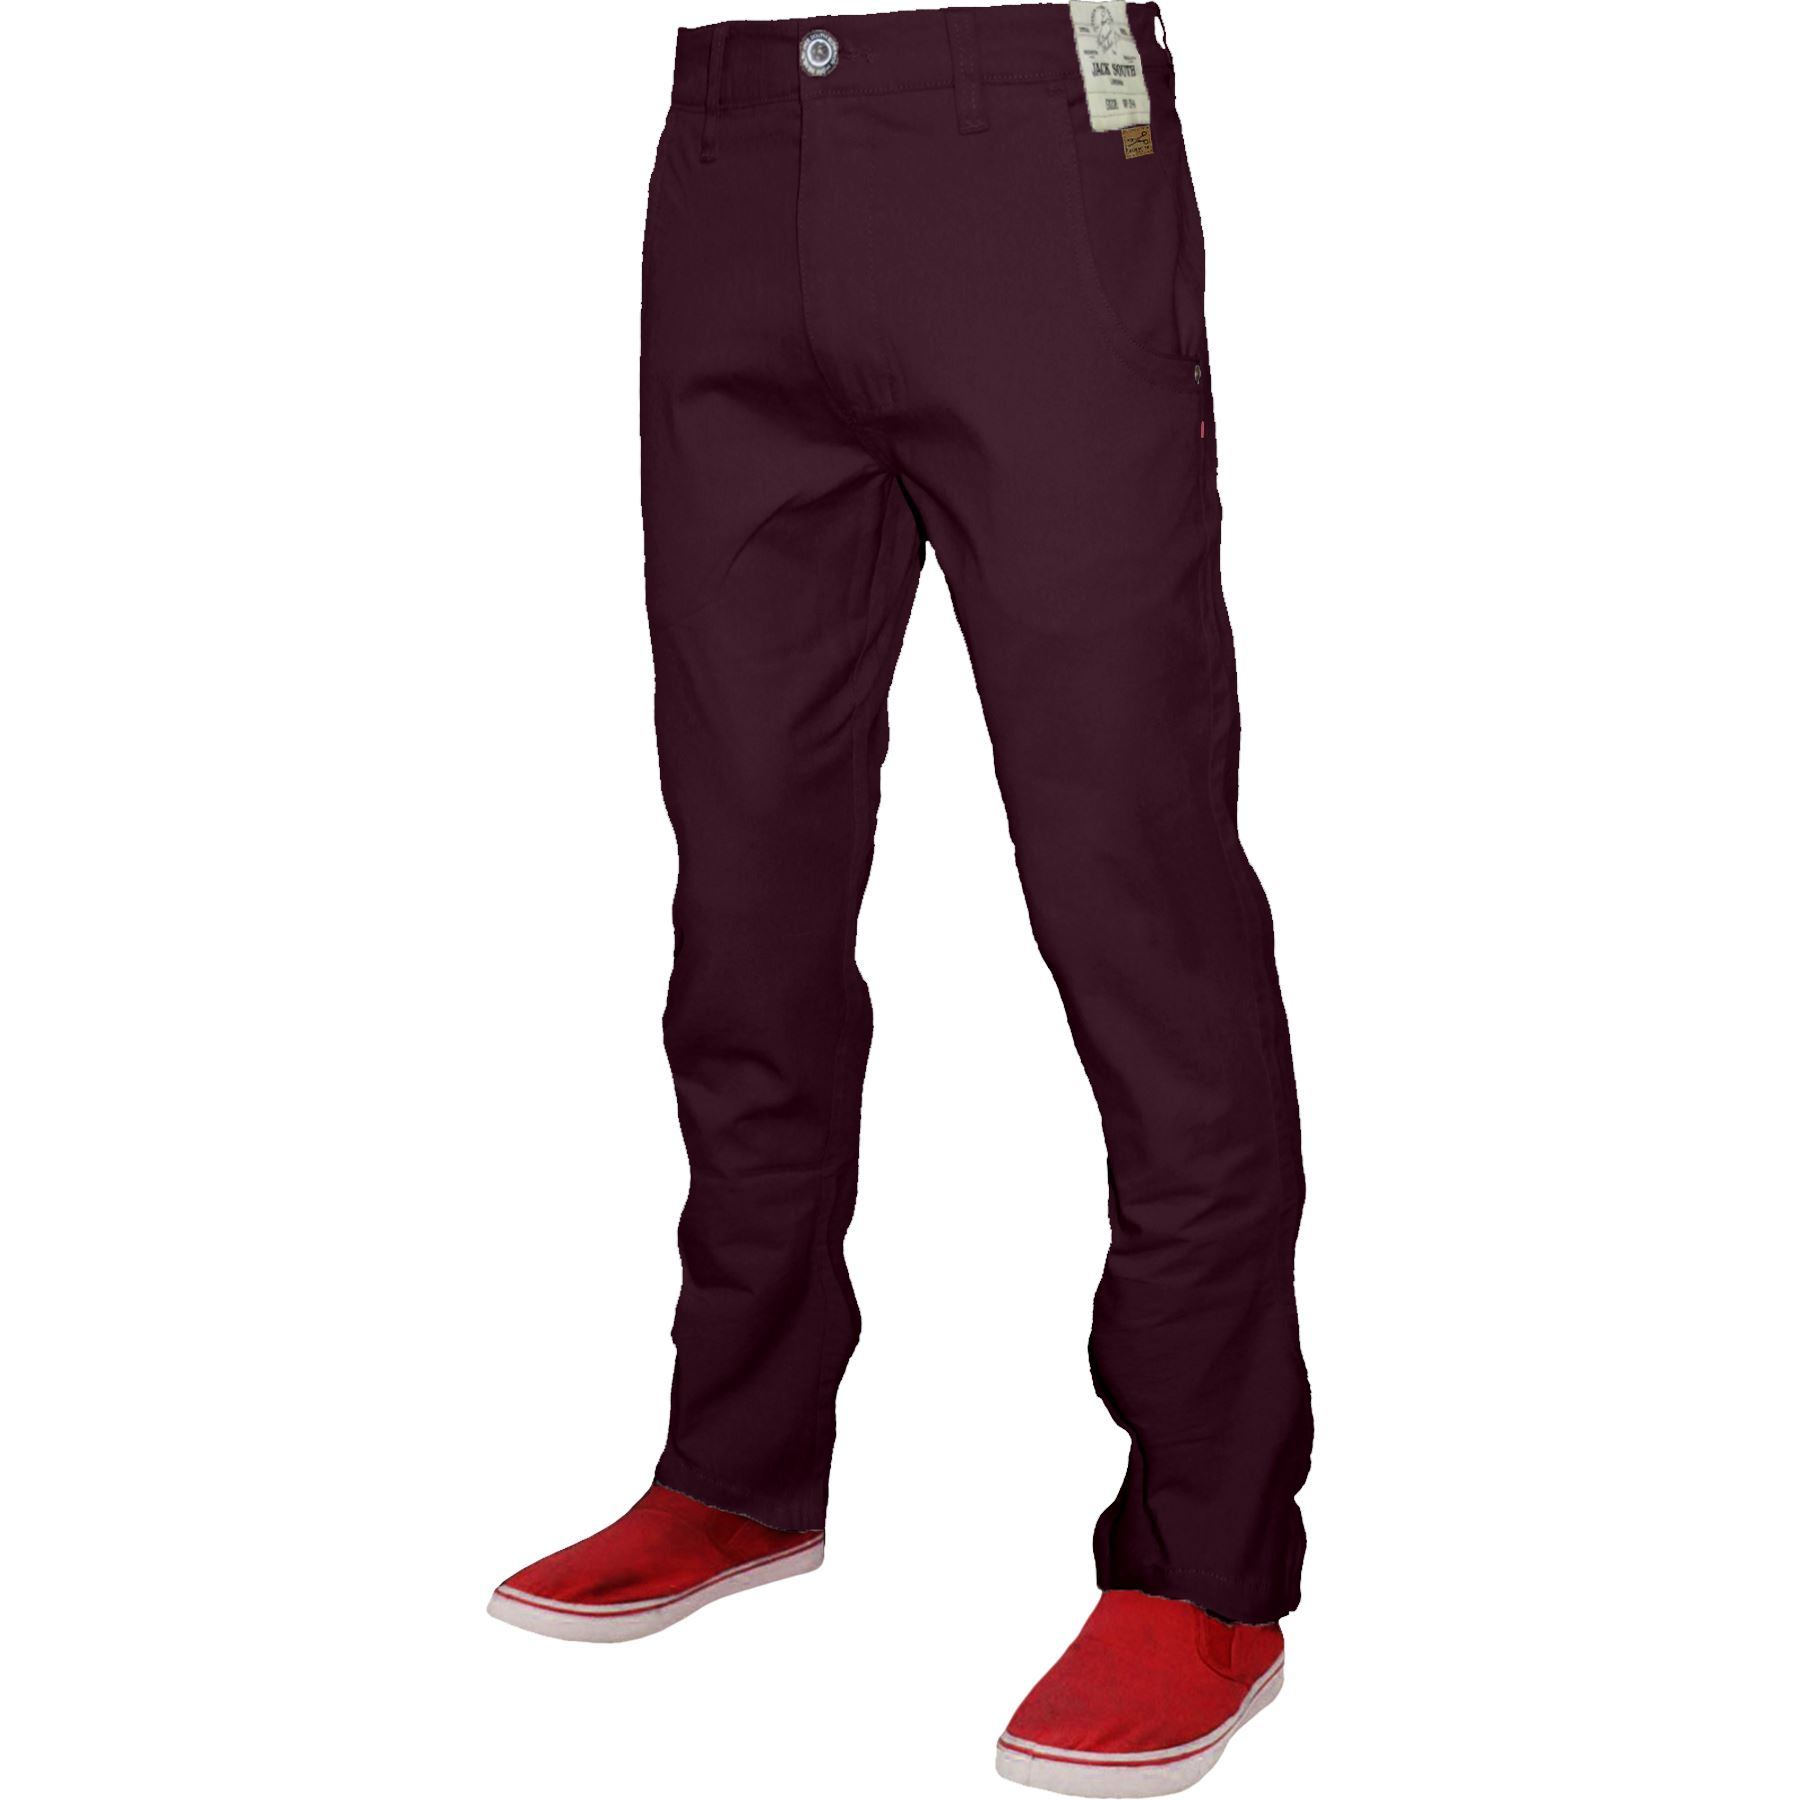 Mens-Chino-Classic-Regular-Fit-Trouser-Casual-Stretch-Spandex-Pants-Size-32-40 thumbnail 18